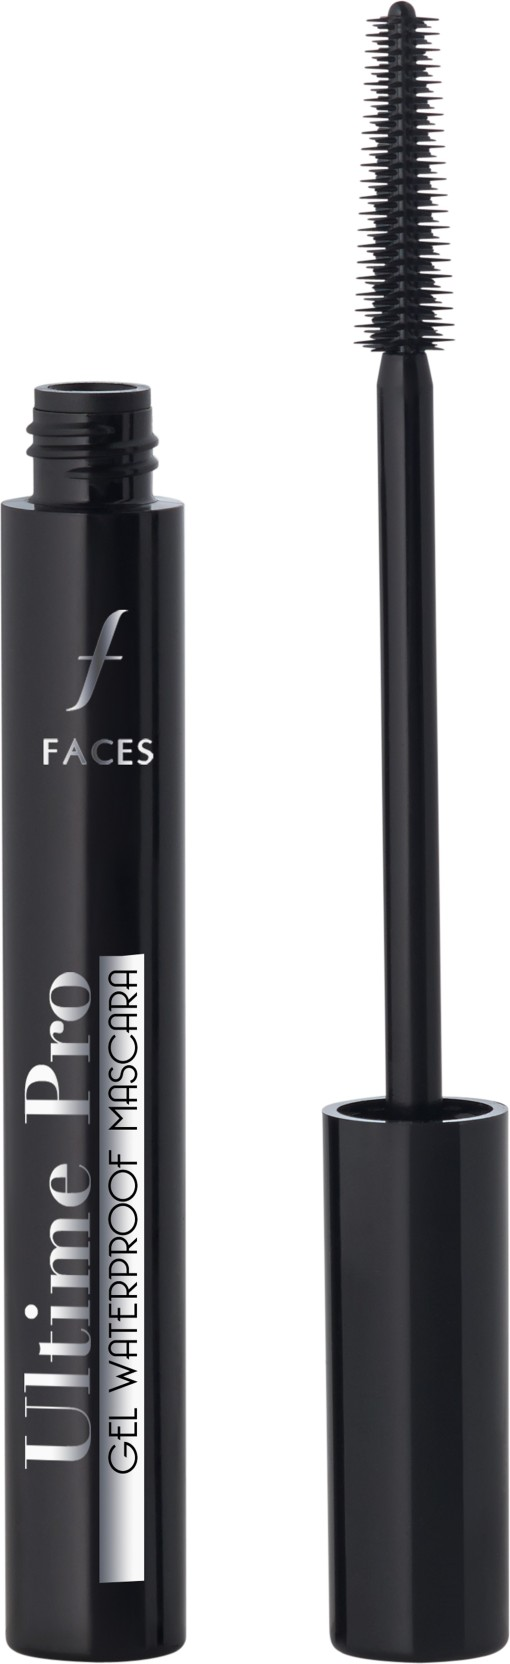 03a2f723b64 Faces Ultime Pro Waterproof Mascara 7.5 ml - Price in India, Buy ...